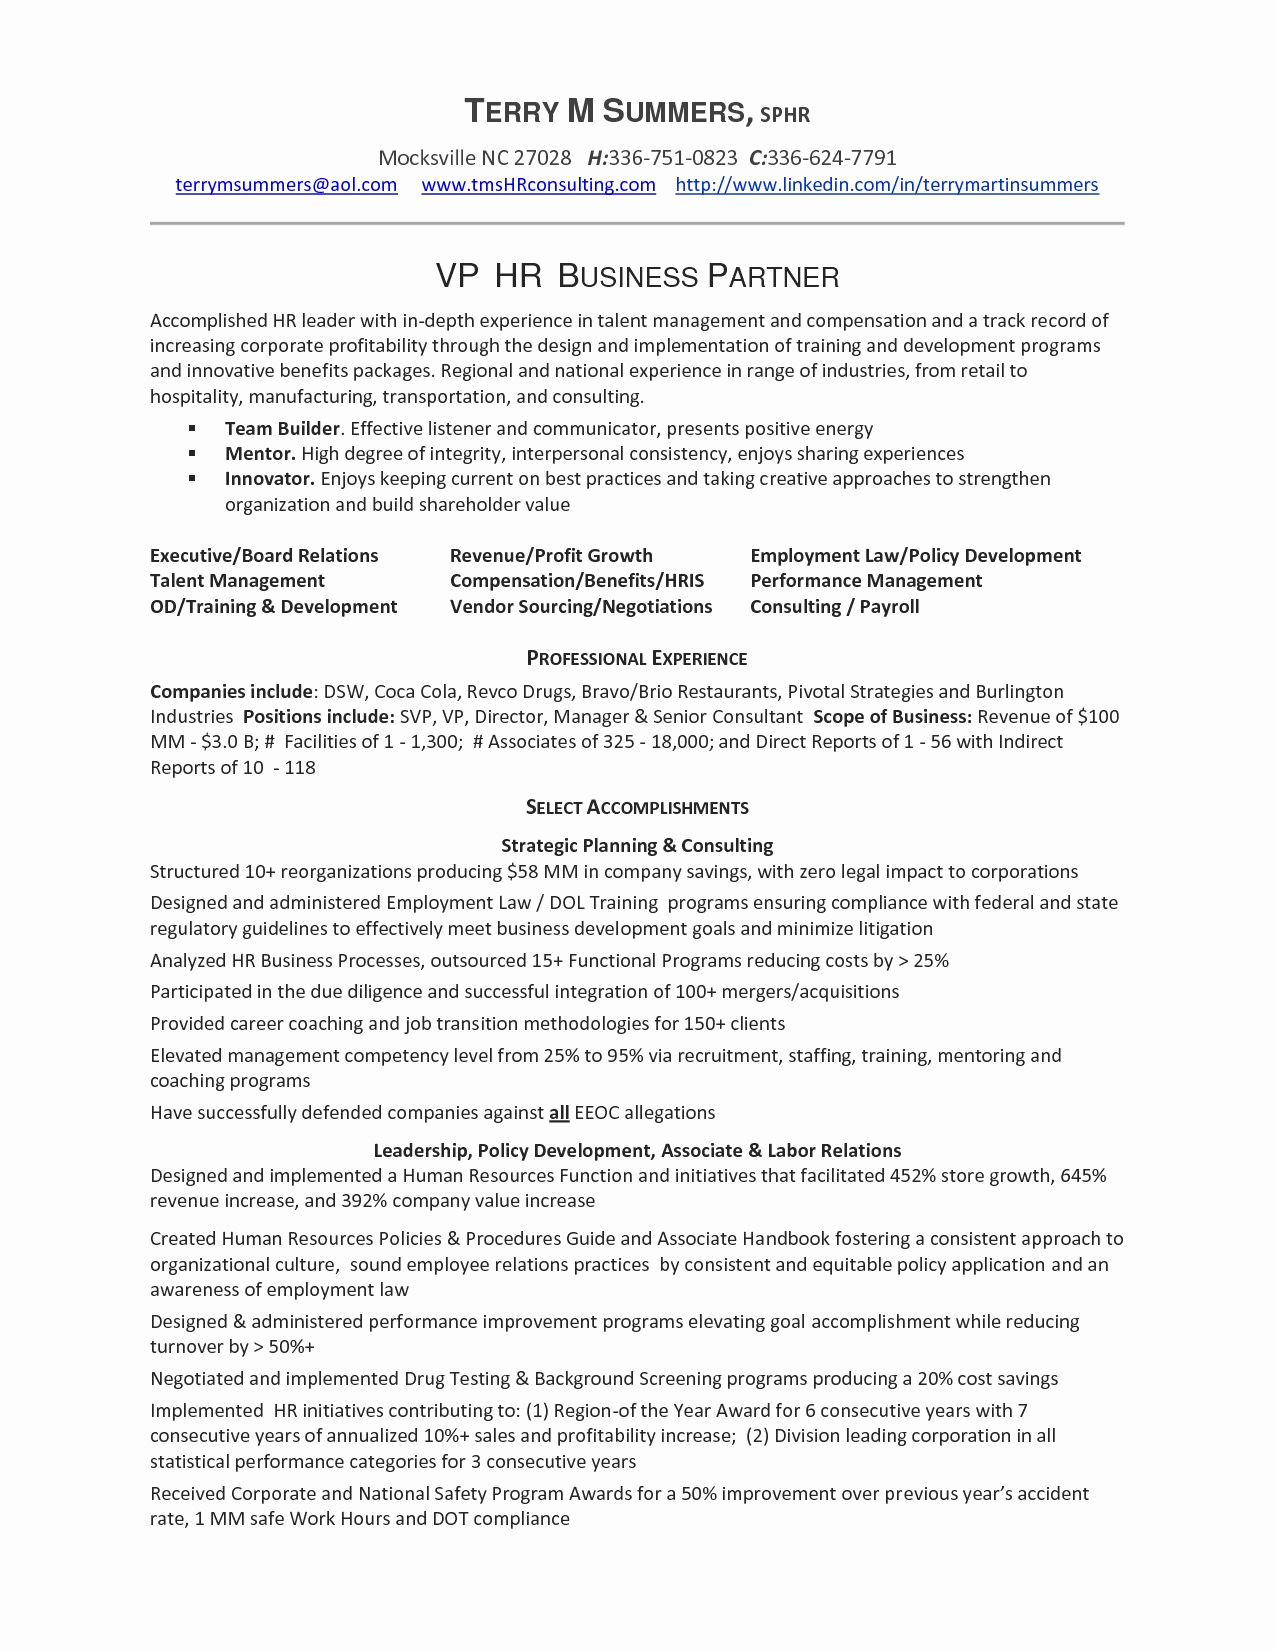 Business Partnership Letter Template - Resume Templates Doc Fresh Business Analyst Resume Sample Doc